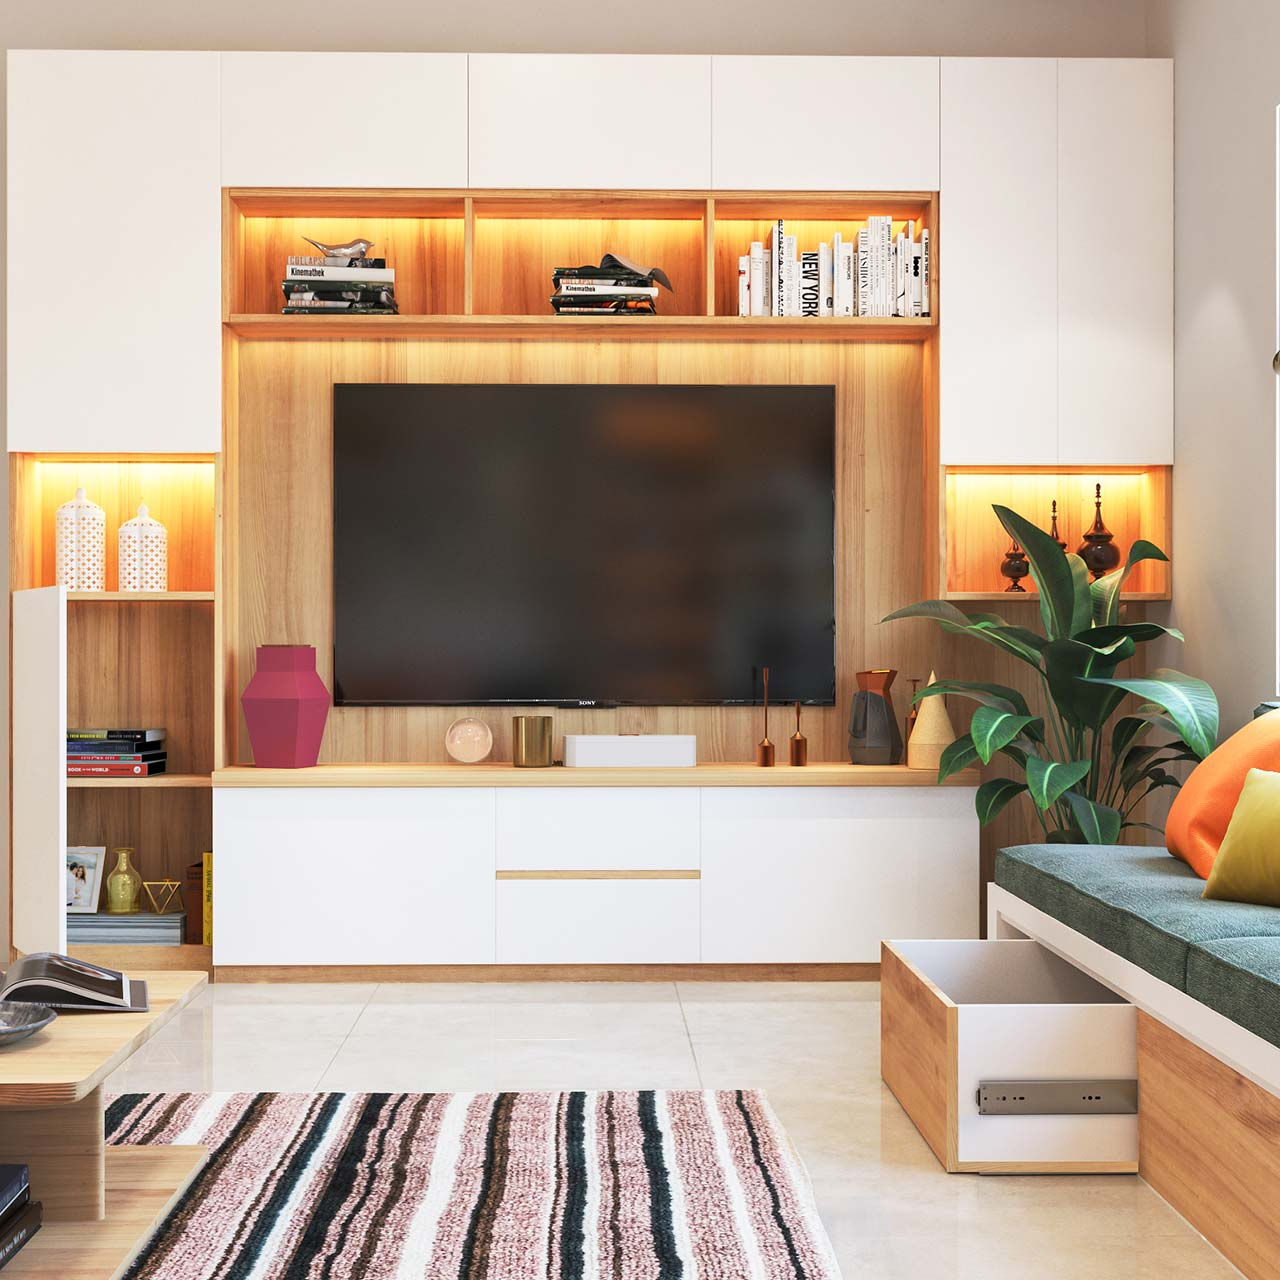 Living Room Cabinet Design In India: Best TV Cabinet Design Ideas For Living Room